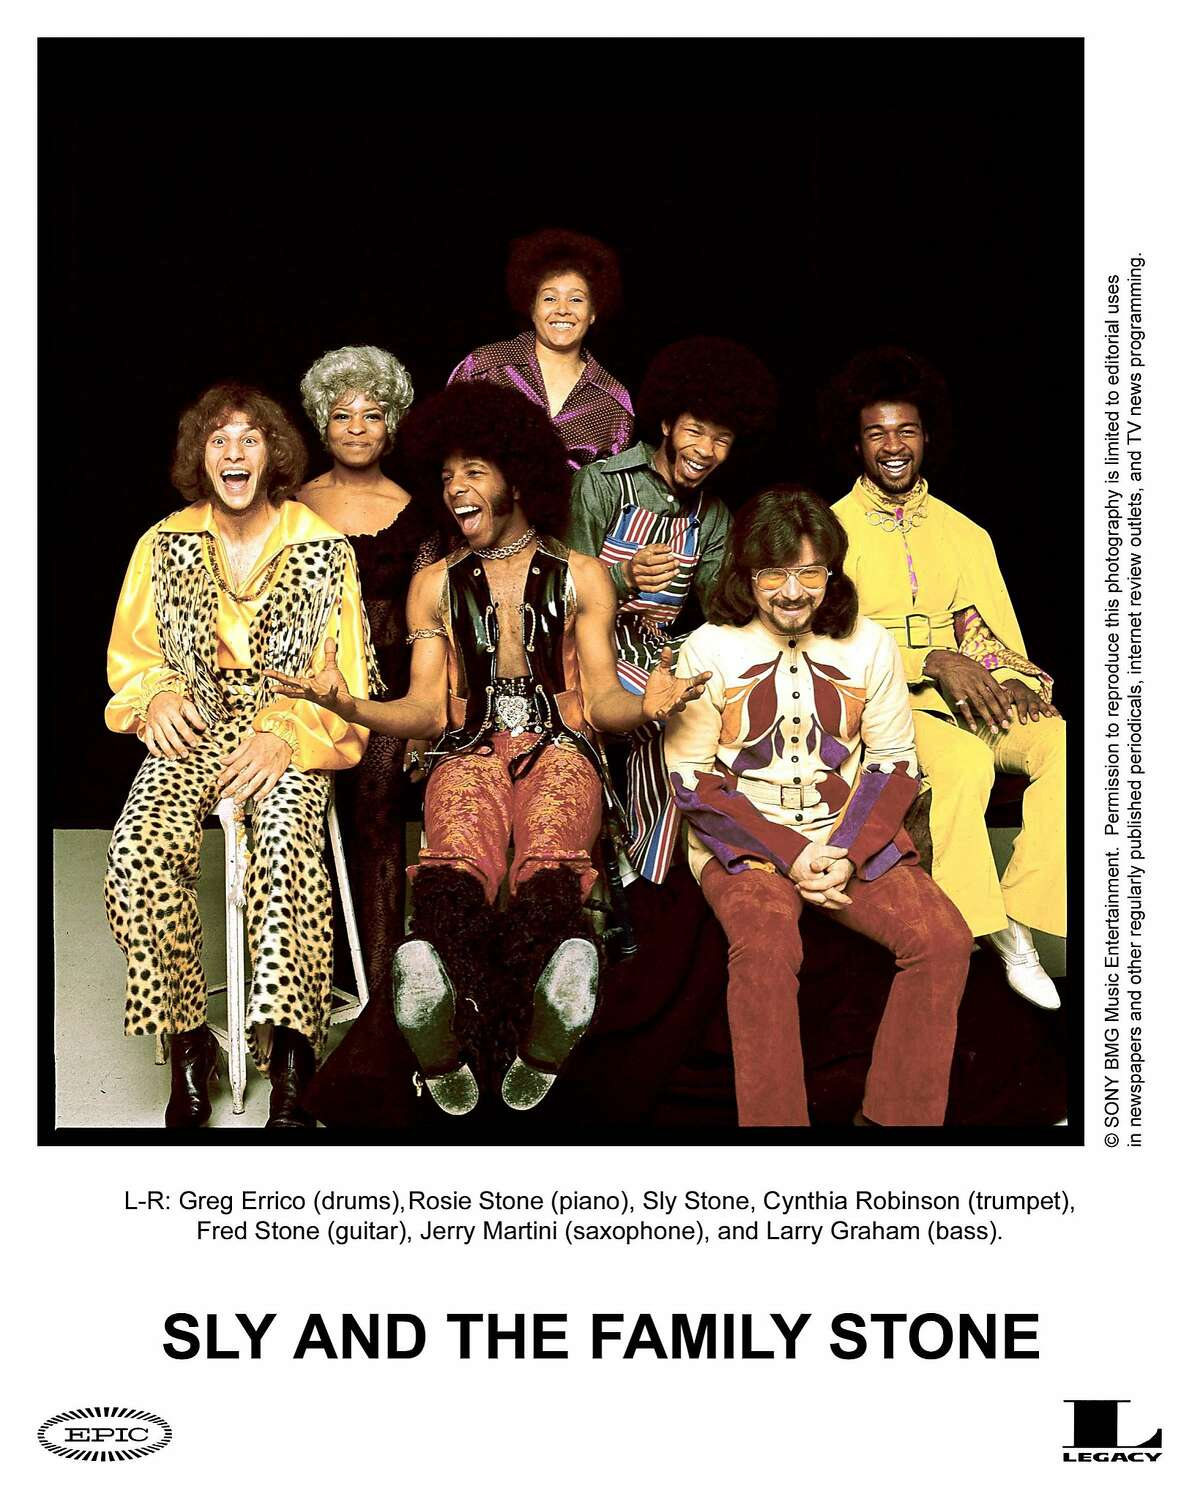 Sly and the Family Stone After moving to Vallejo from Dallas, the youngest four children of the religious Stewart family - Sylvester, Rose, Freddie, and Vaetta - started a Christian band called the Stewart Four. Sylvester, who'd go on to take the name Sly, and his brother Freddie joined bands in high school, and in 1964, Sly became a DJ in San Francisco for a R&B and rock station called KSOL. He was also a fairly successful record producer. By a couple years later, Sly was playing in bands around town and piloting one group, Sly & the Stoners, while Freddie was working with another, called Freddie and the Stone Souls. Soon, following the suggestion of a friend, the brothers joined their bands together in early 1967, creating a sort of supergroup. The first name, Sly Brothers and Sisters, didn't stick, so they changed it to Sly & the Family Stone after their first gig in Redwood City. The new band featured Sly, Cynthia Robinson (a holdover from Sly's previous band) on trumpet, guitarist Fred Stewart, bassist Larry Graham, saxophonist Jerry Martini, pianist Rosie Stone, and drummer Greg Errico. The racial makeup of the band made them a fresh departure from the other mostly-white rock bands of the '60s, although their first album,